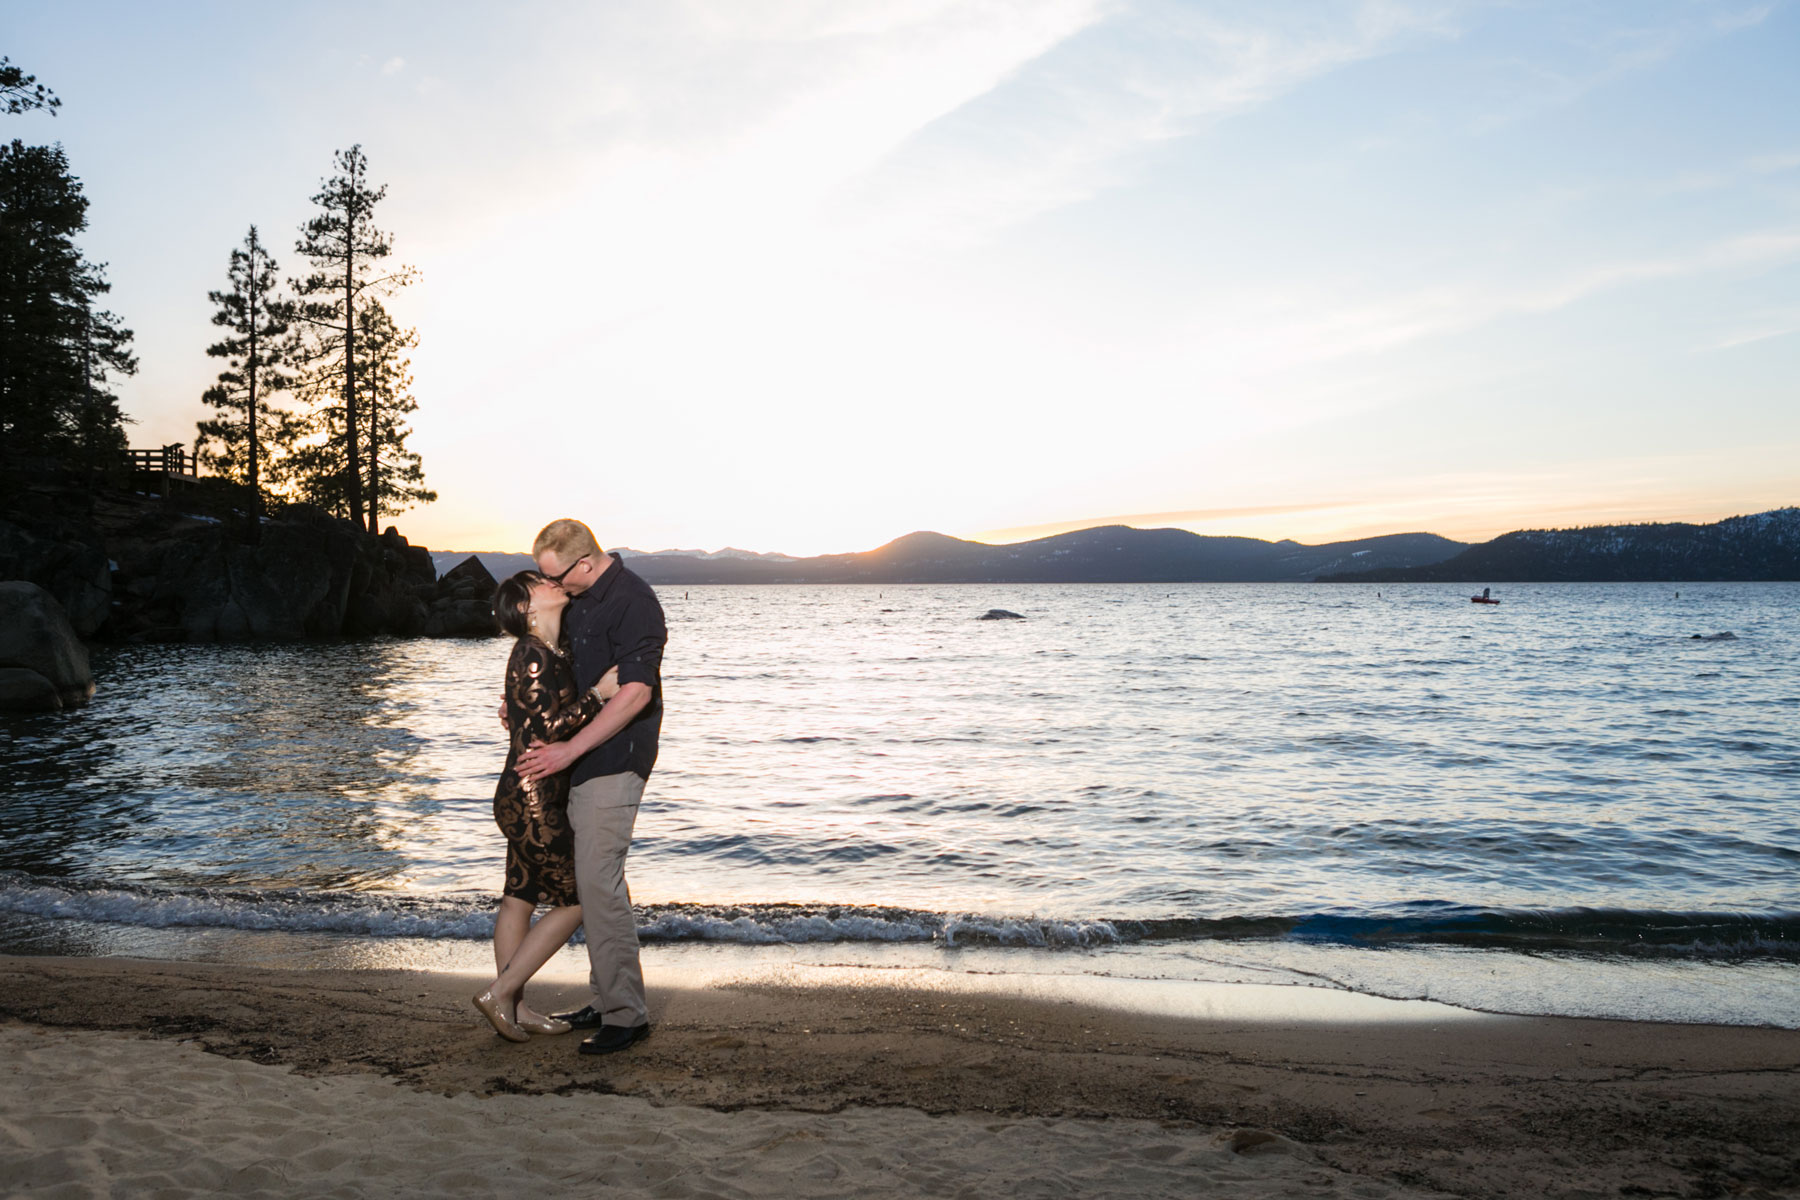 tahoe-love-engagement-27-weddings